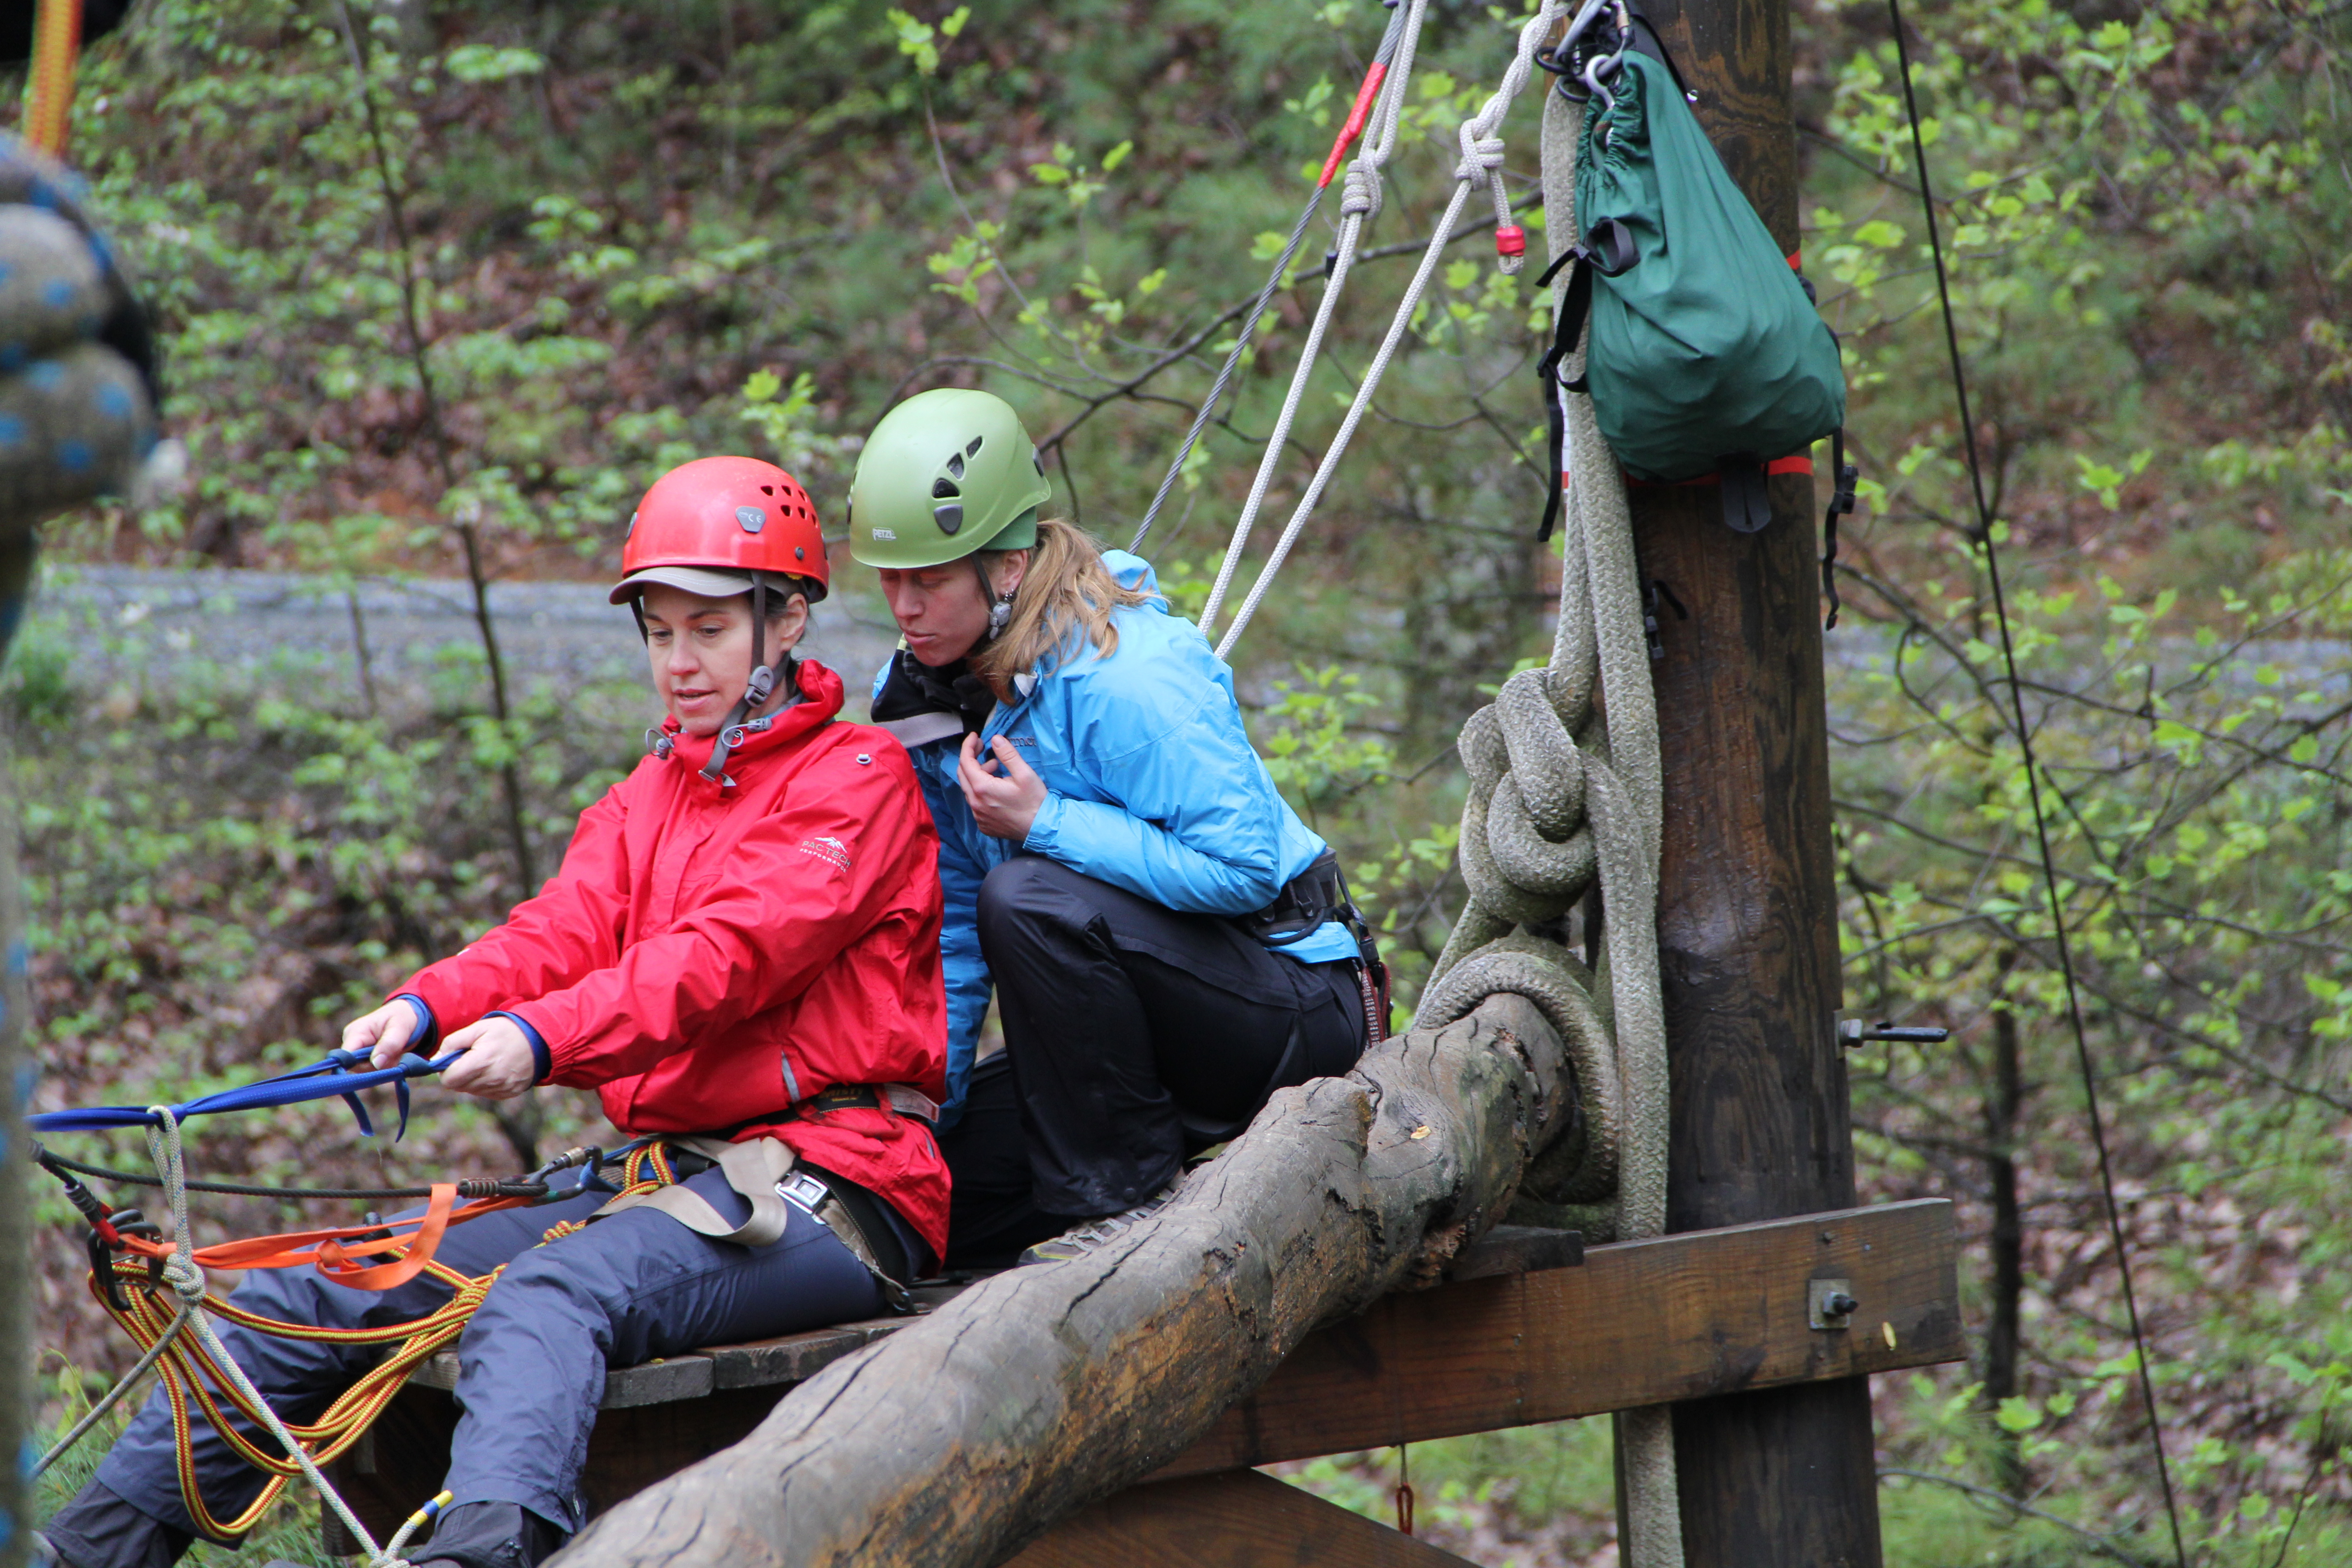 Outward Bound Professional instructors